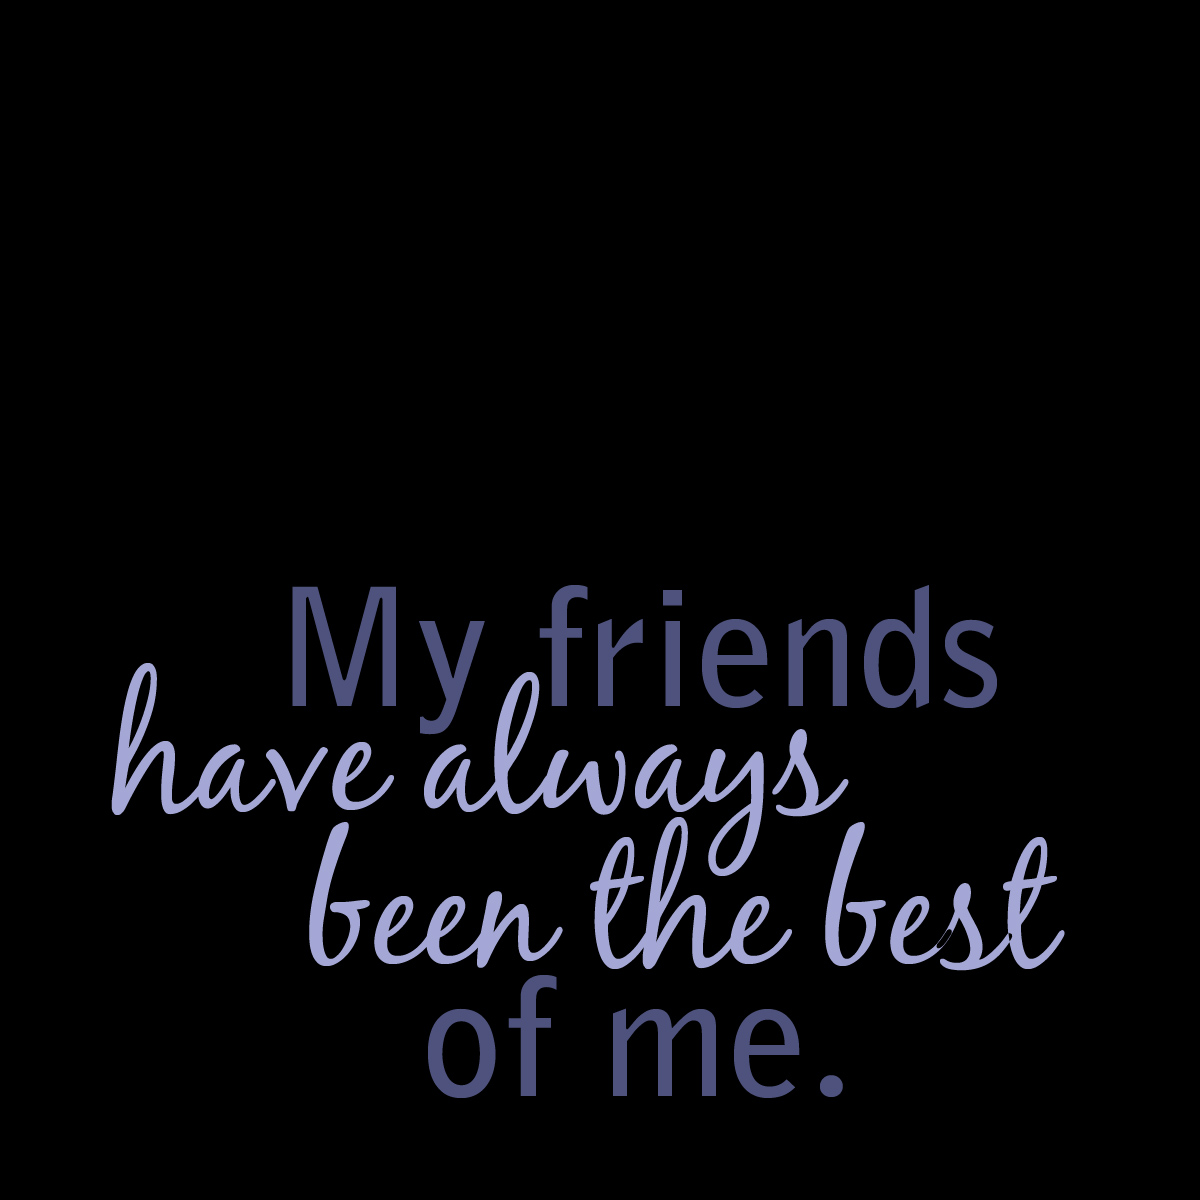 Quotes About Friendship With Background 19 Quotes